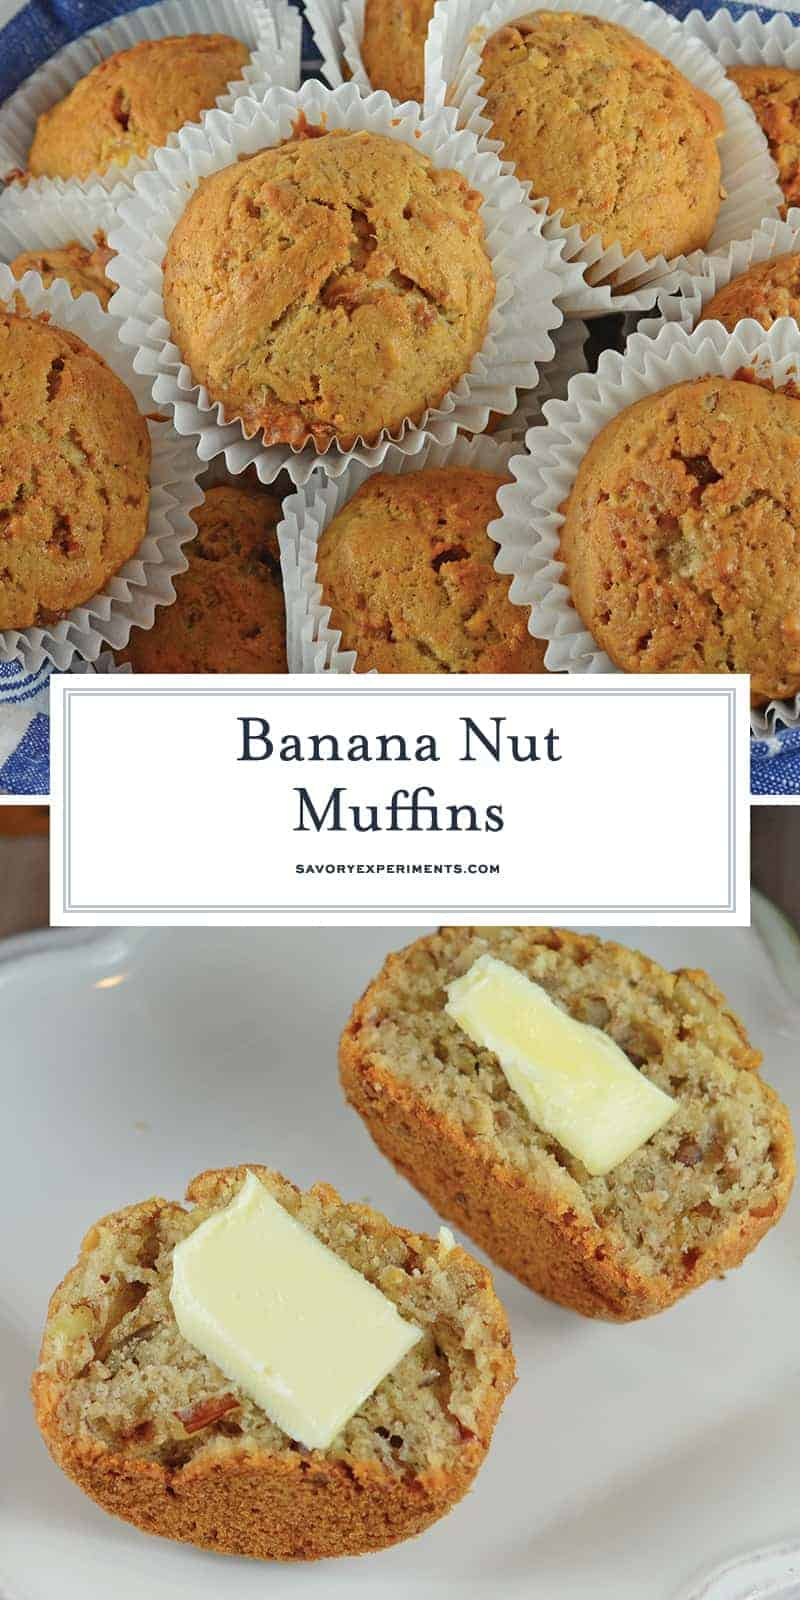 Banana Nut Muffins are a classic recipe, and the perfect use for overripe bananas. Whip them up for breakfast with just a few simple ingredients you already have in your pantry! #banananutmuffins #bananarecipes www.savoryexperiments.com